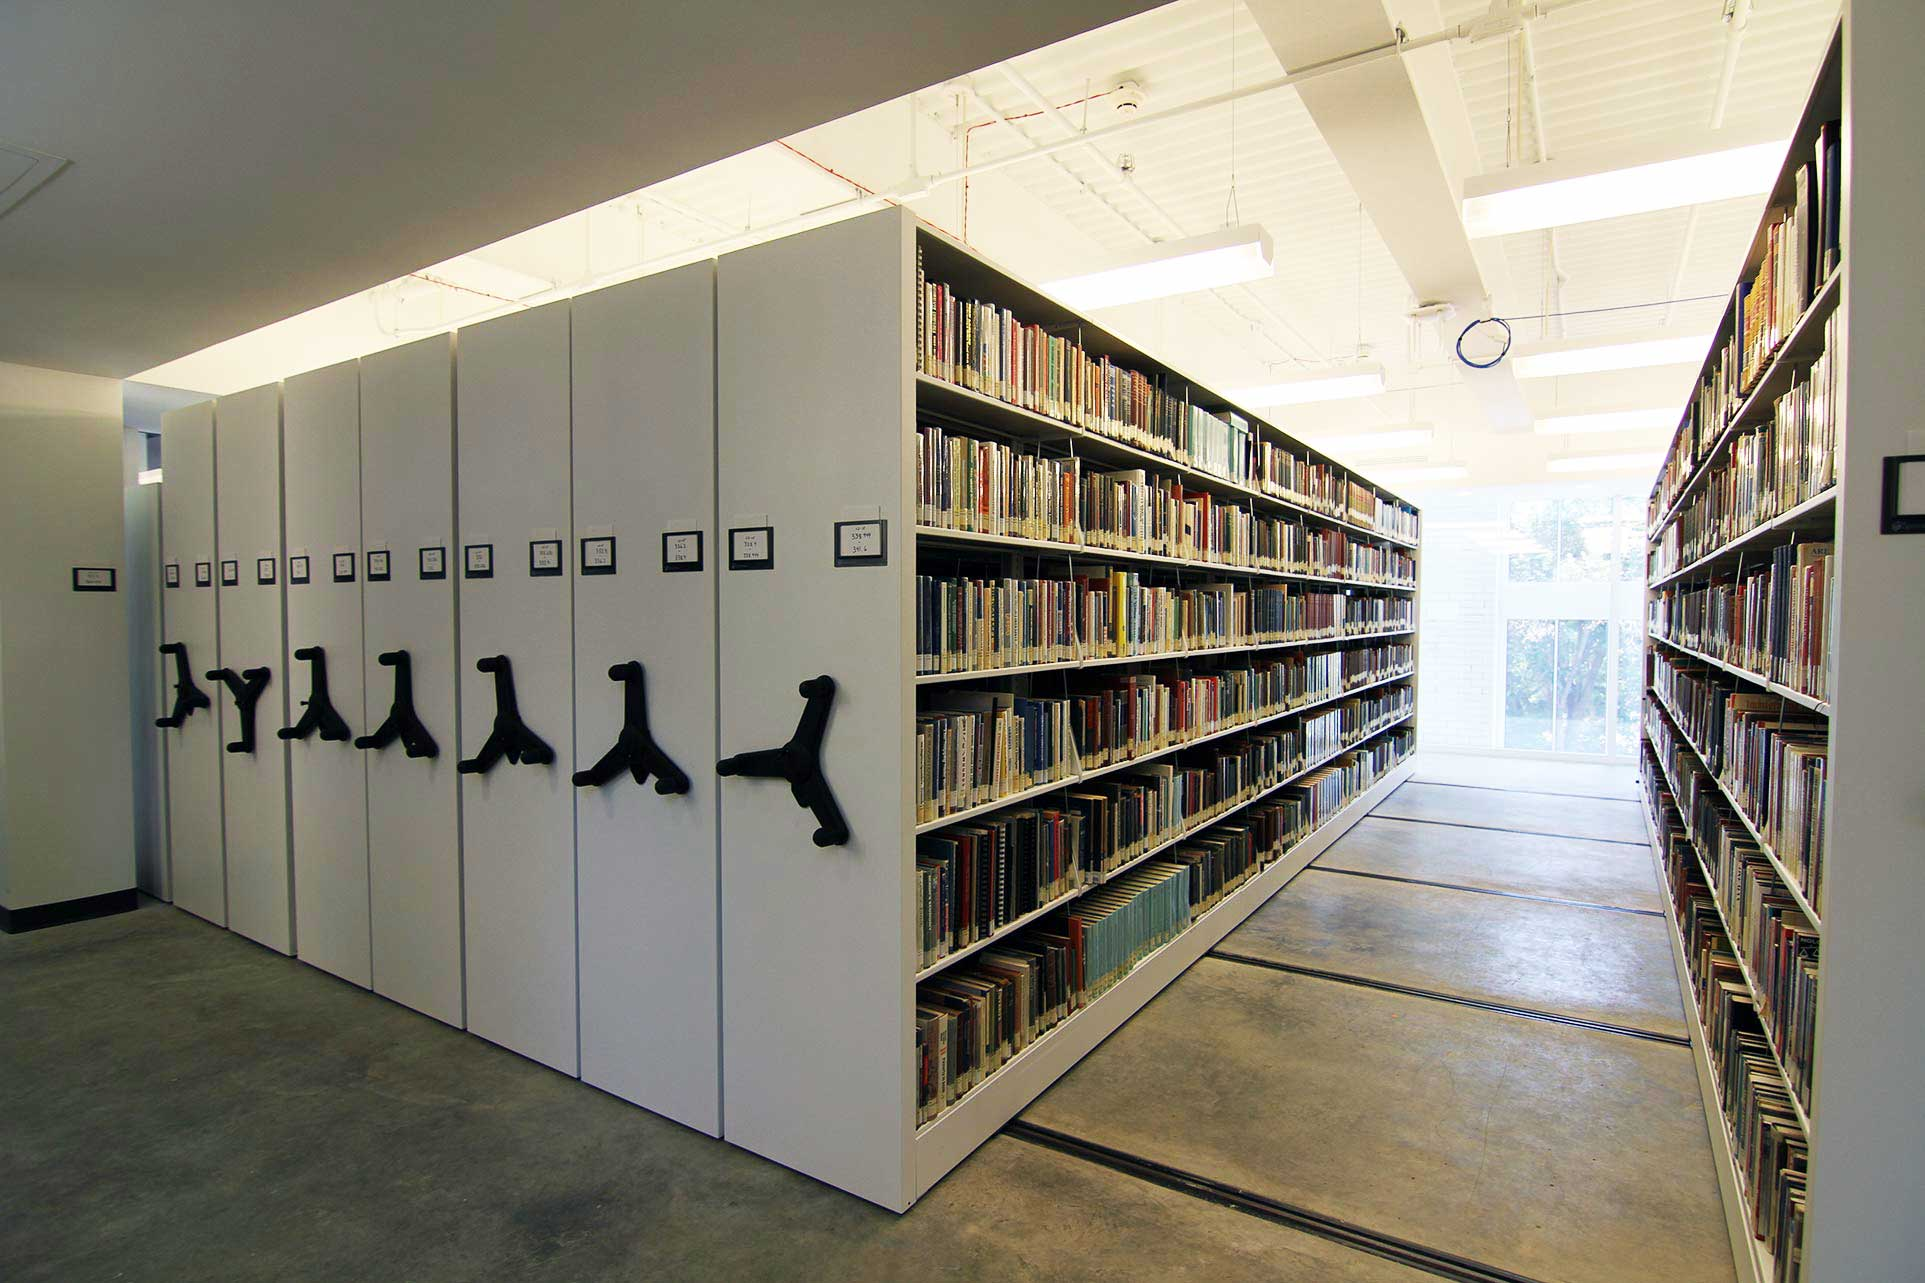 Education libraries storage